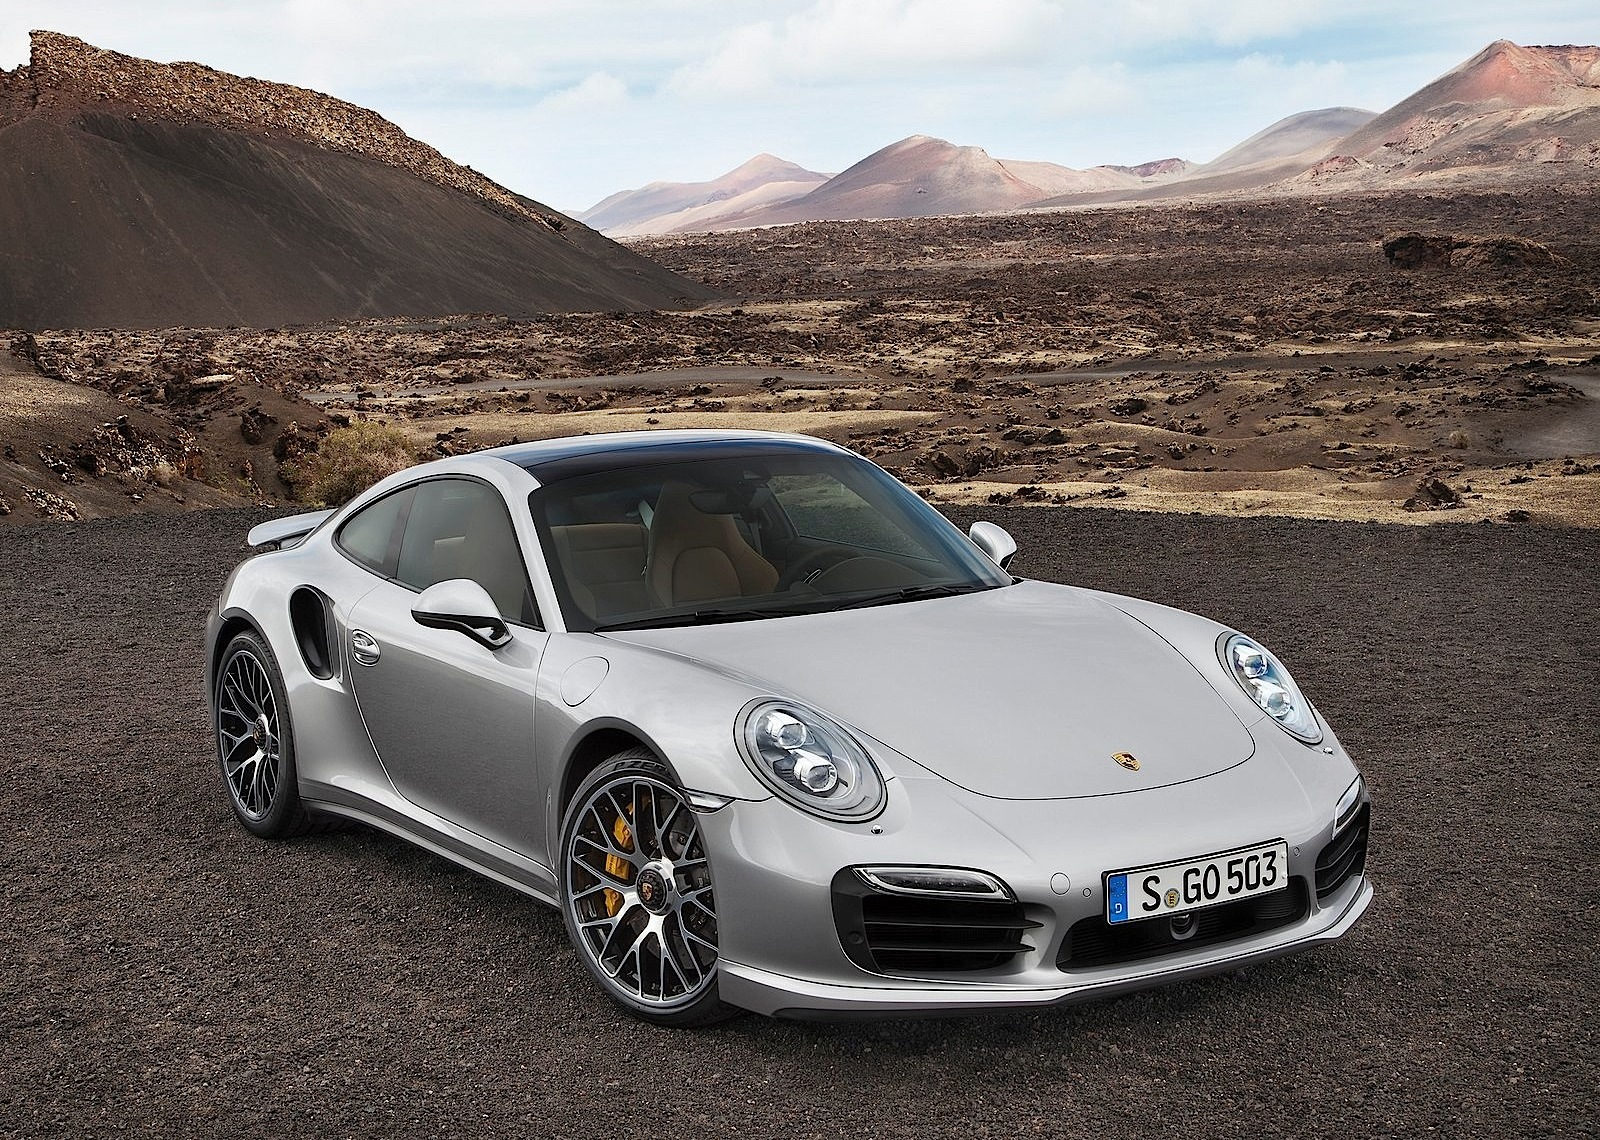 porsche 911 turbo s 991 specs photos 2013 2014 2015 2016 autoevolution. Black Bedroom Furniture Sets. Home Design Ideas